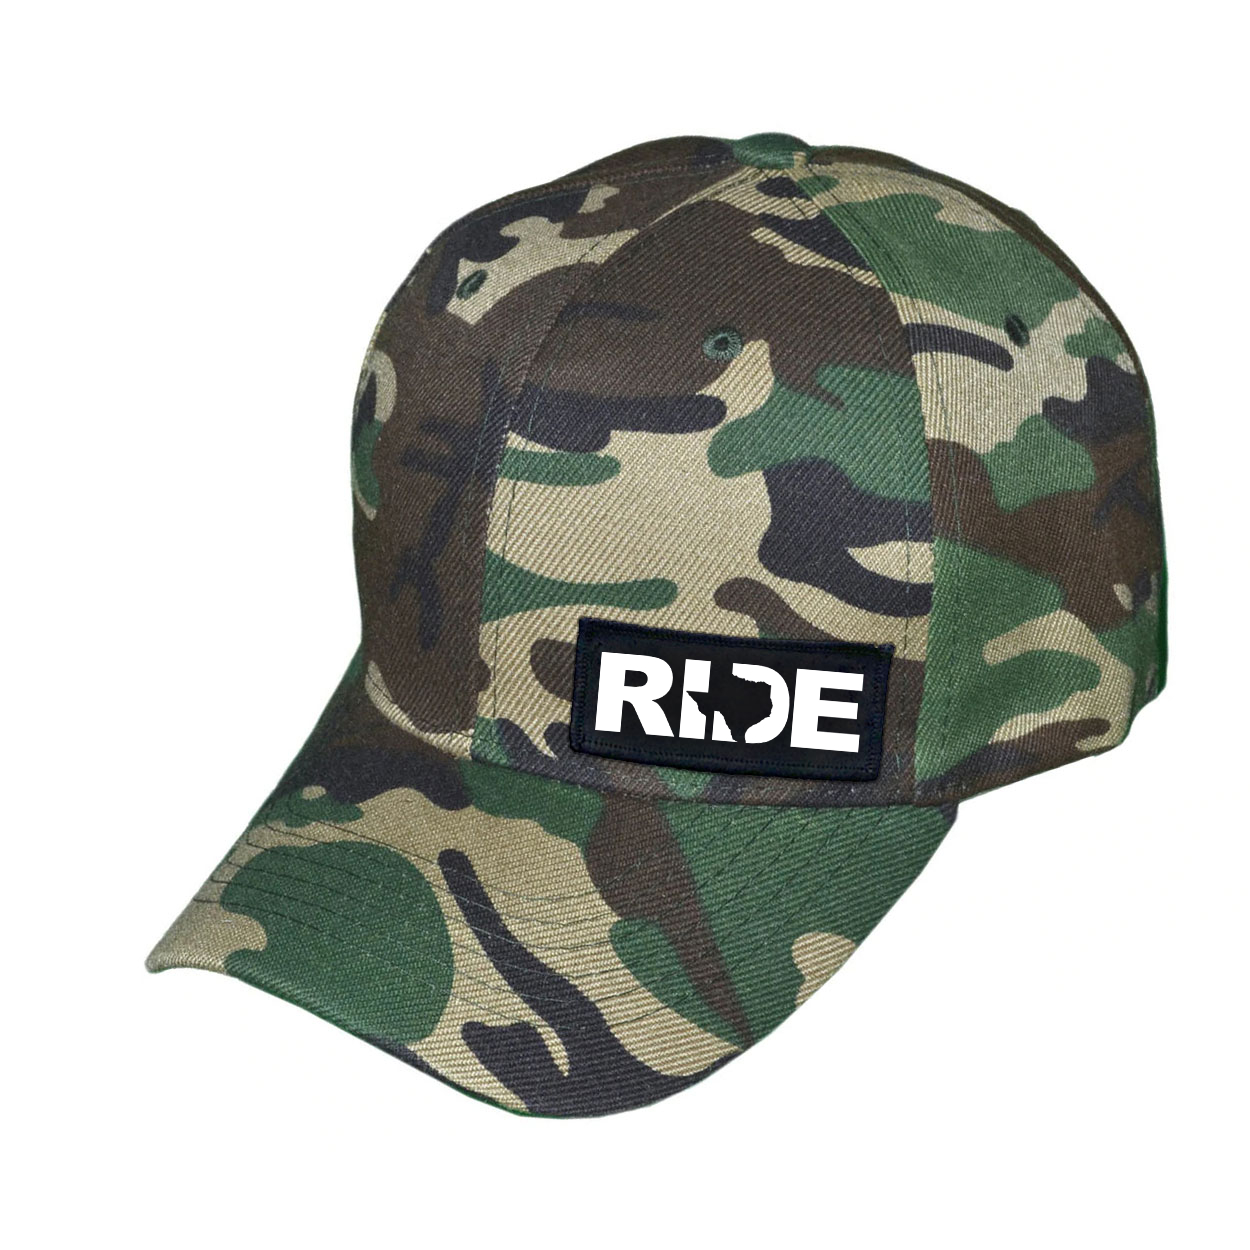 Ride Texas Night Out Woven Patch Hat Camo (White Logo)